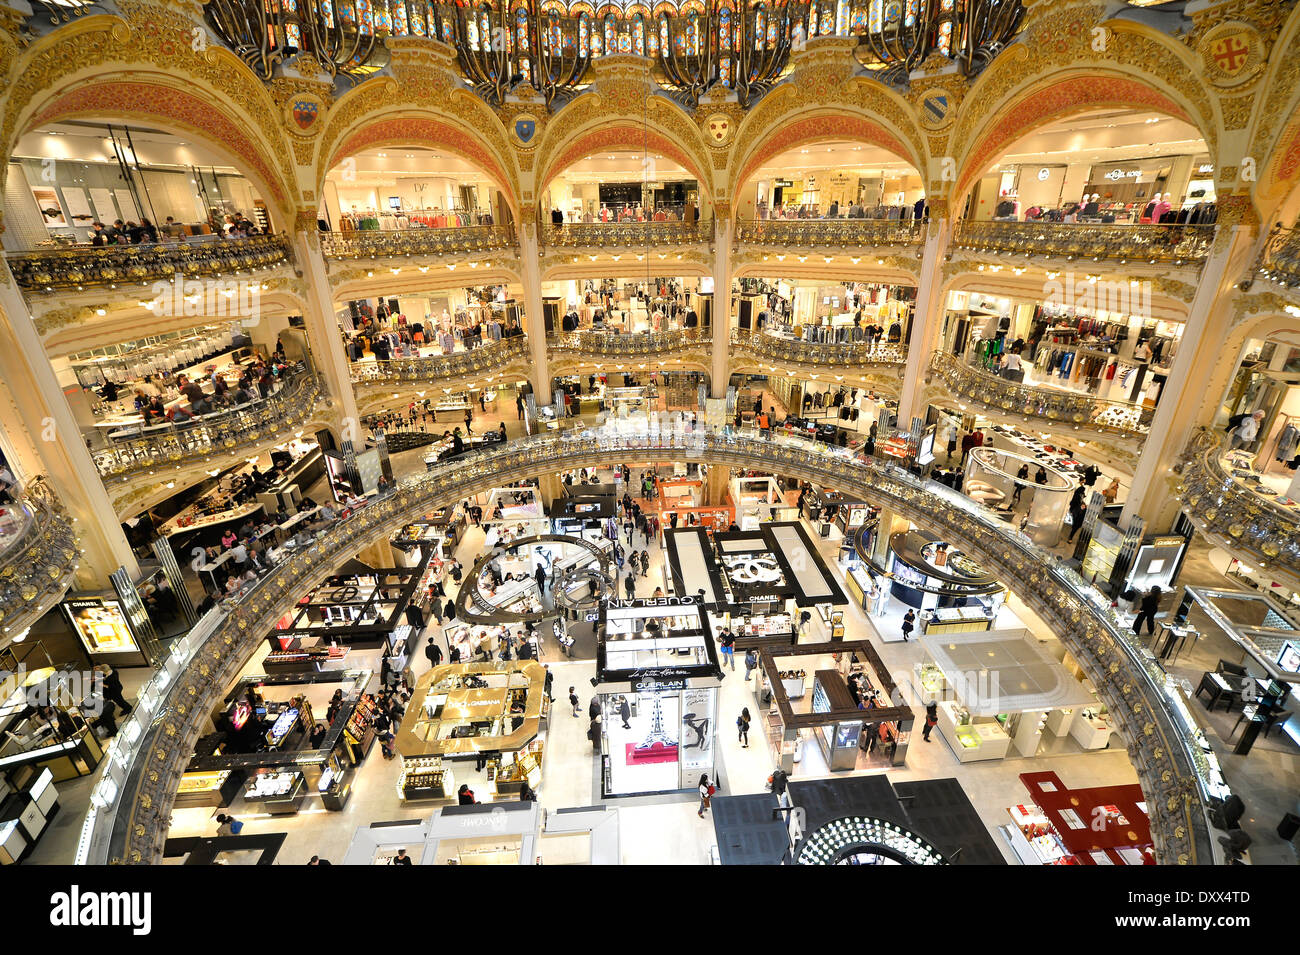 galeries lafayette department store paris le de france france stock photo royalty free. Black Bedroom Furniture Sets. Home Design Ideas